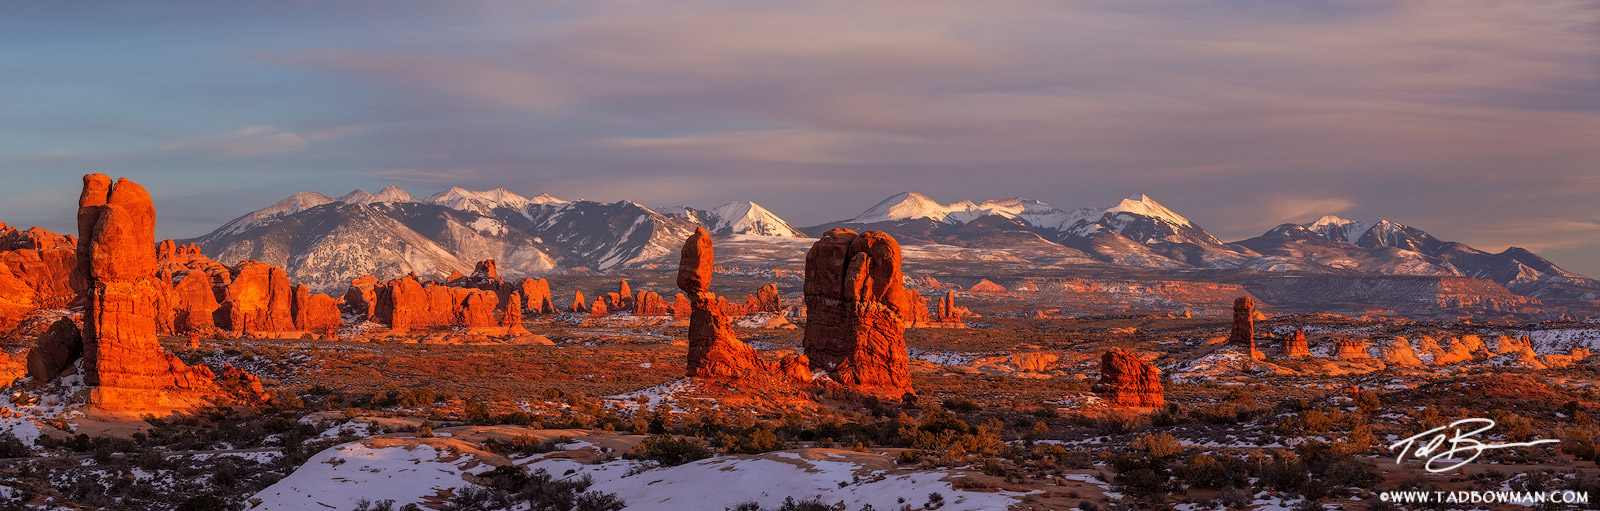 Utah,Arches National Park photos,Sunset,Snowy,La Sal Mountains,Winter,balance rock,orange,pano,panos,panorama,panoramas,Moab,desert,southwest,colorado plateau,arches pictures, photo